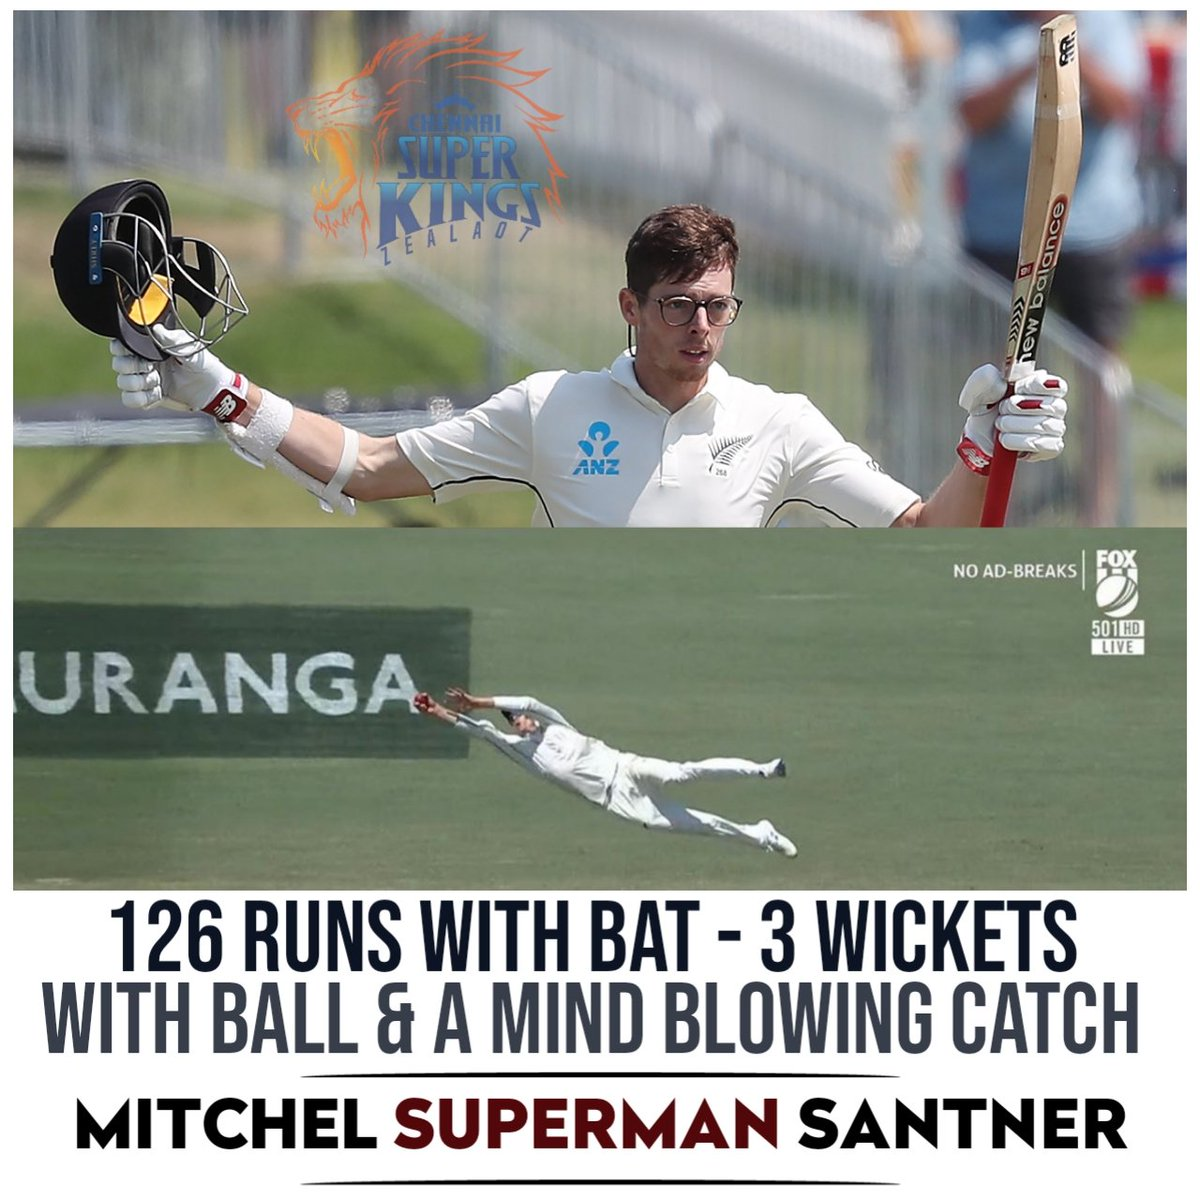 An Unforgettable Day to our @ChennaiIPL Super King Santner  as his blockbuster all-round efforts won the match against Eng !!   #Santner #ENGVNZ <br>http://pic.twitter.com/OOwxPzBfjc